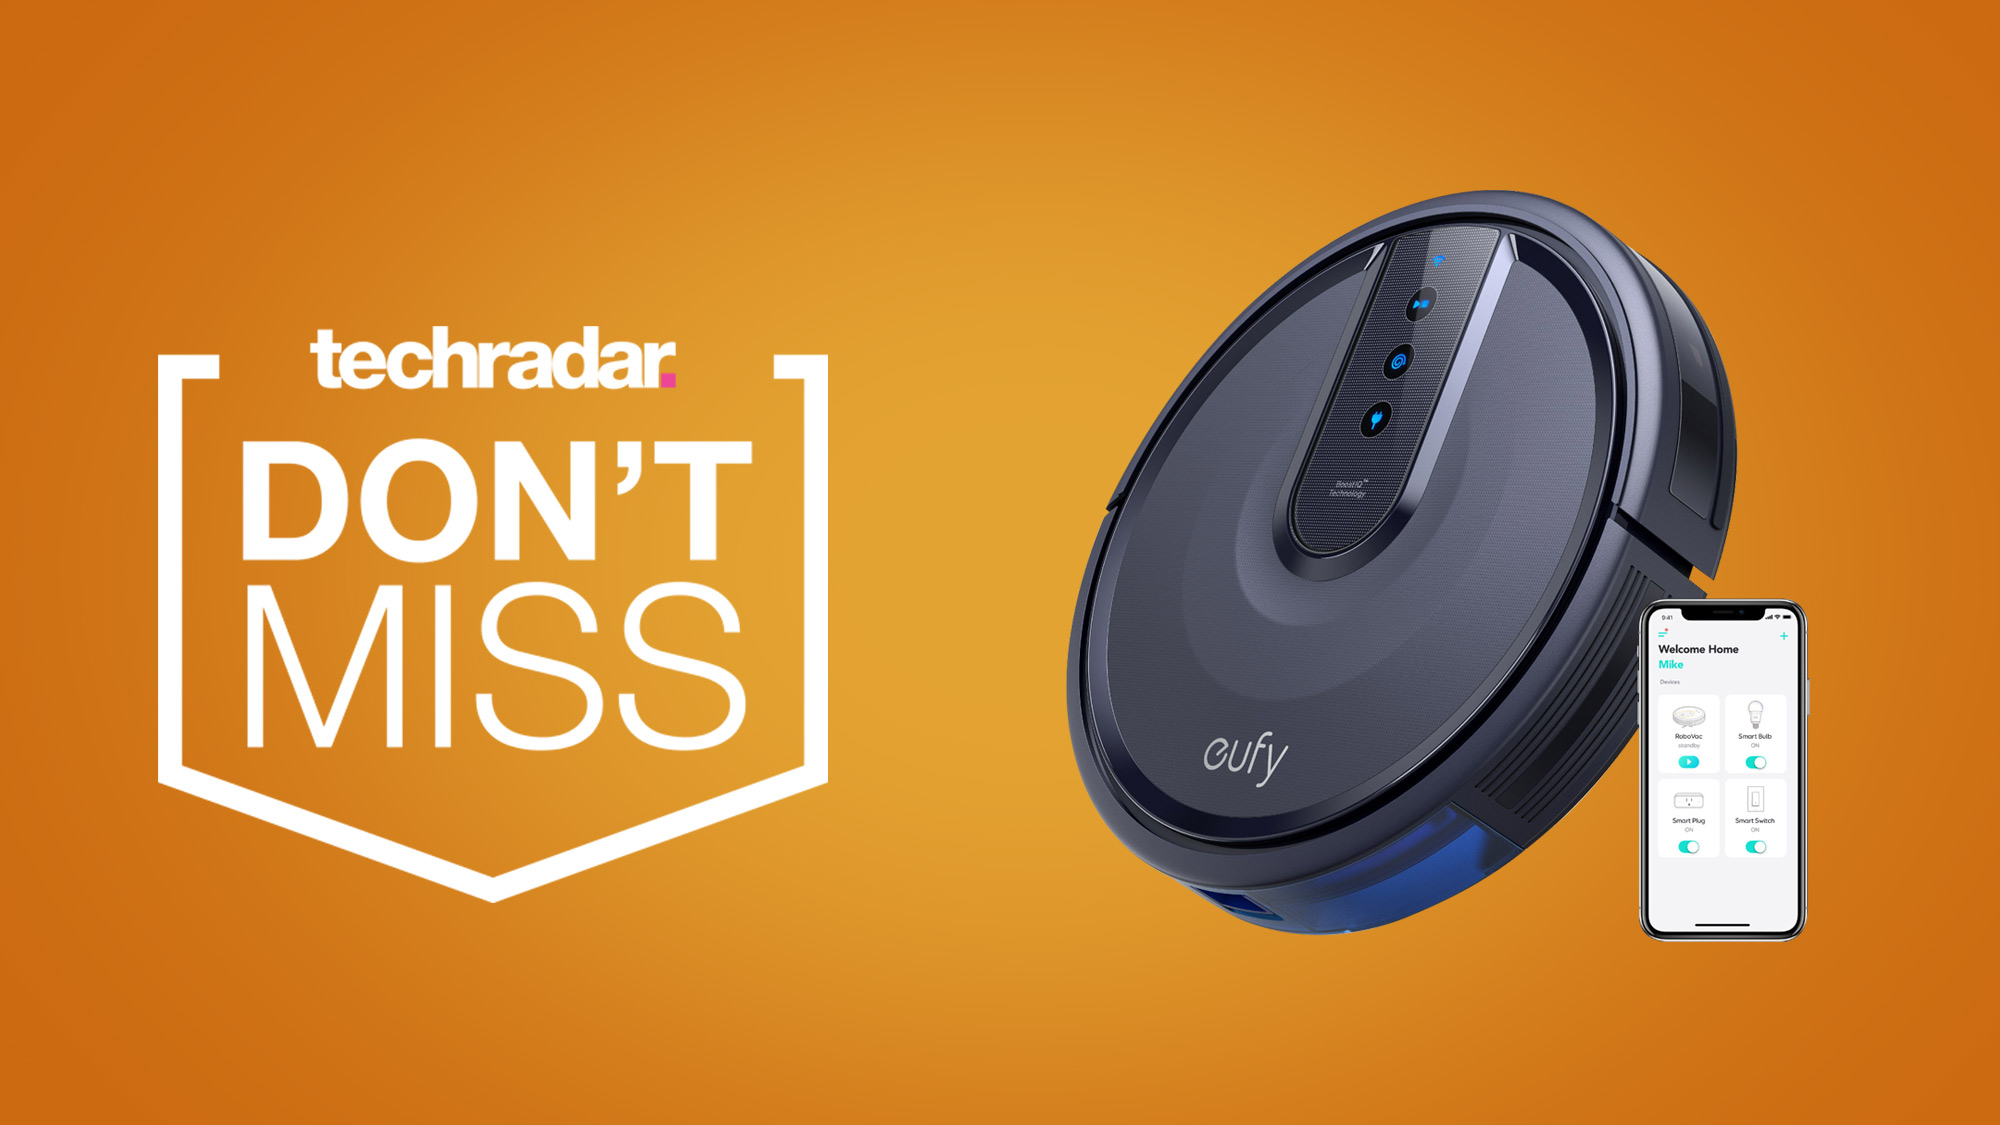 Save $100 with cheap robot vacuum cleaner deal at Walmart